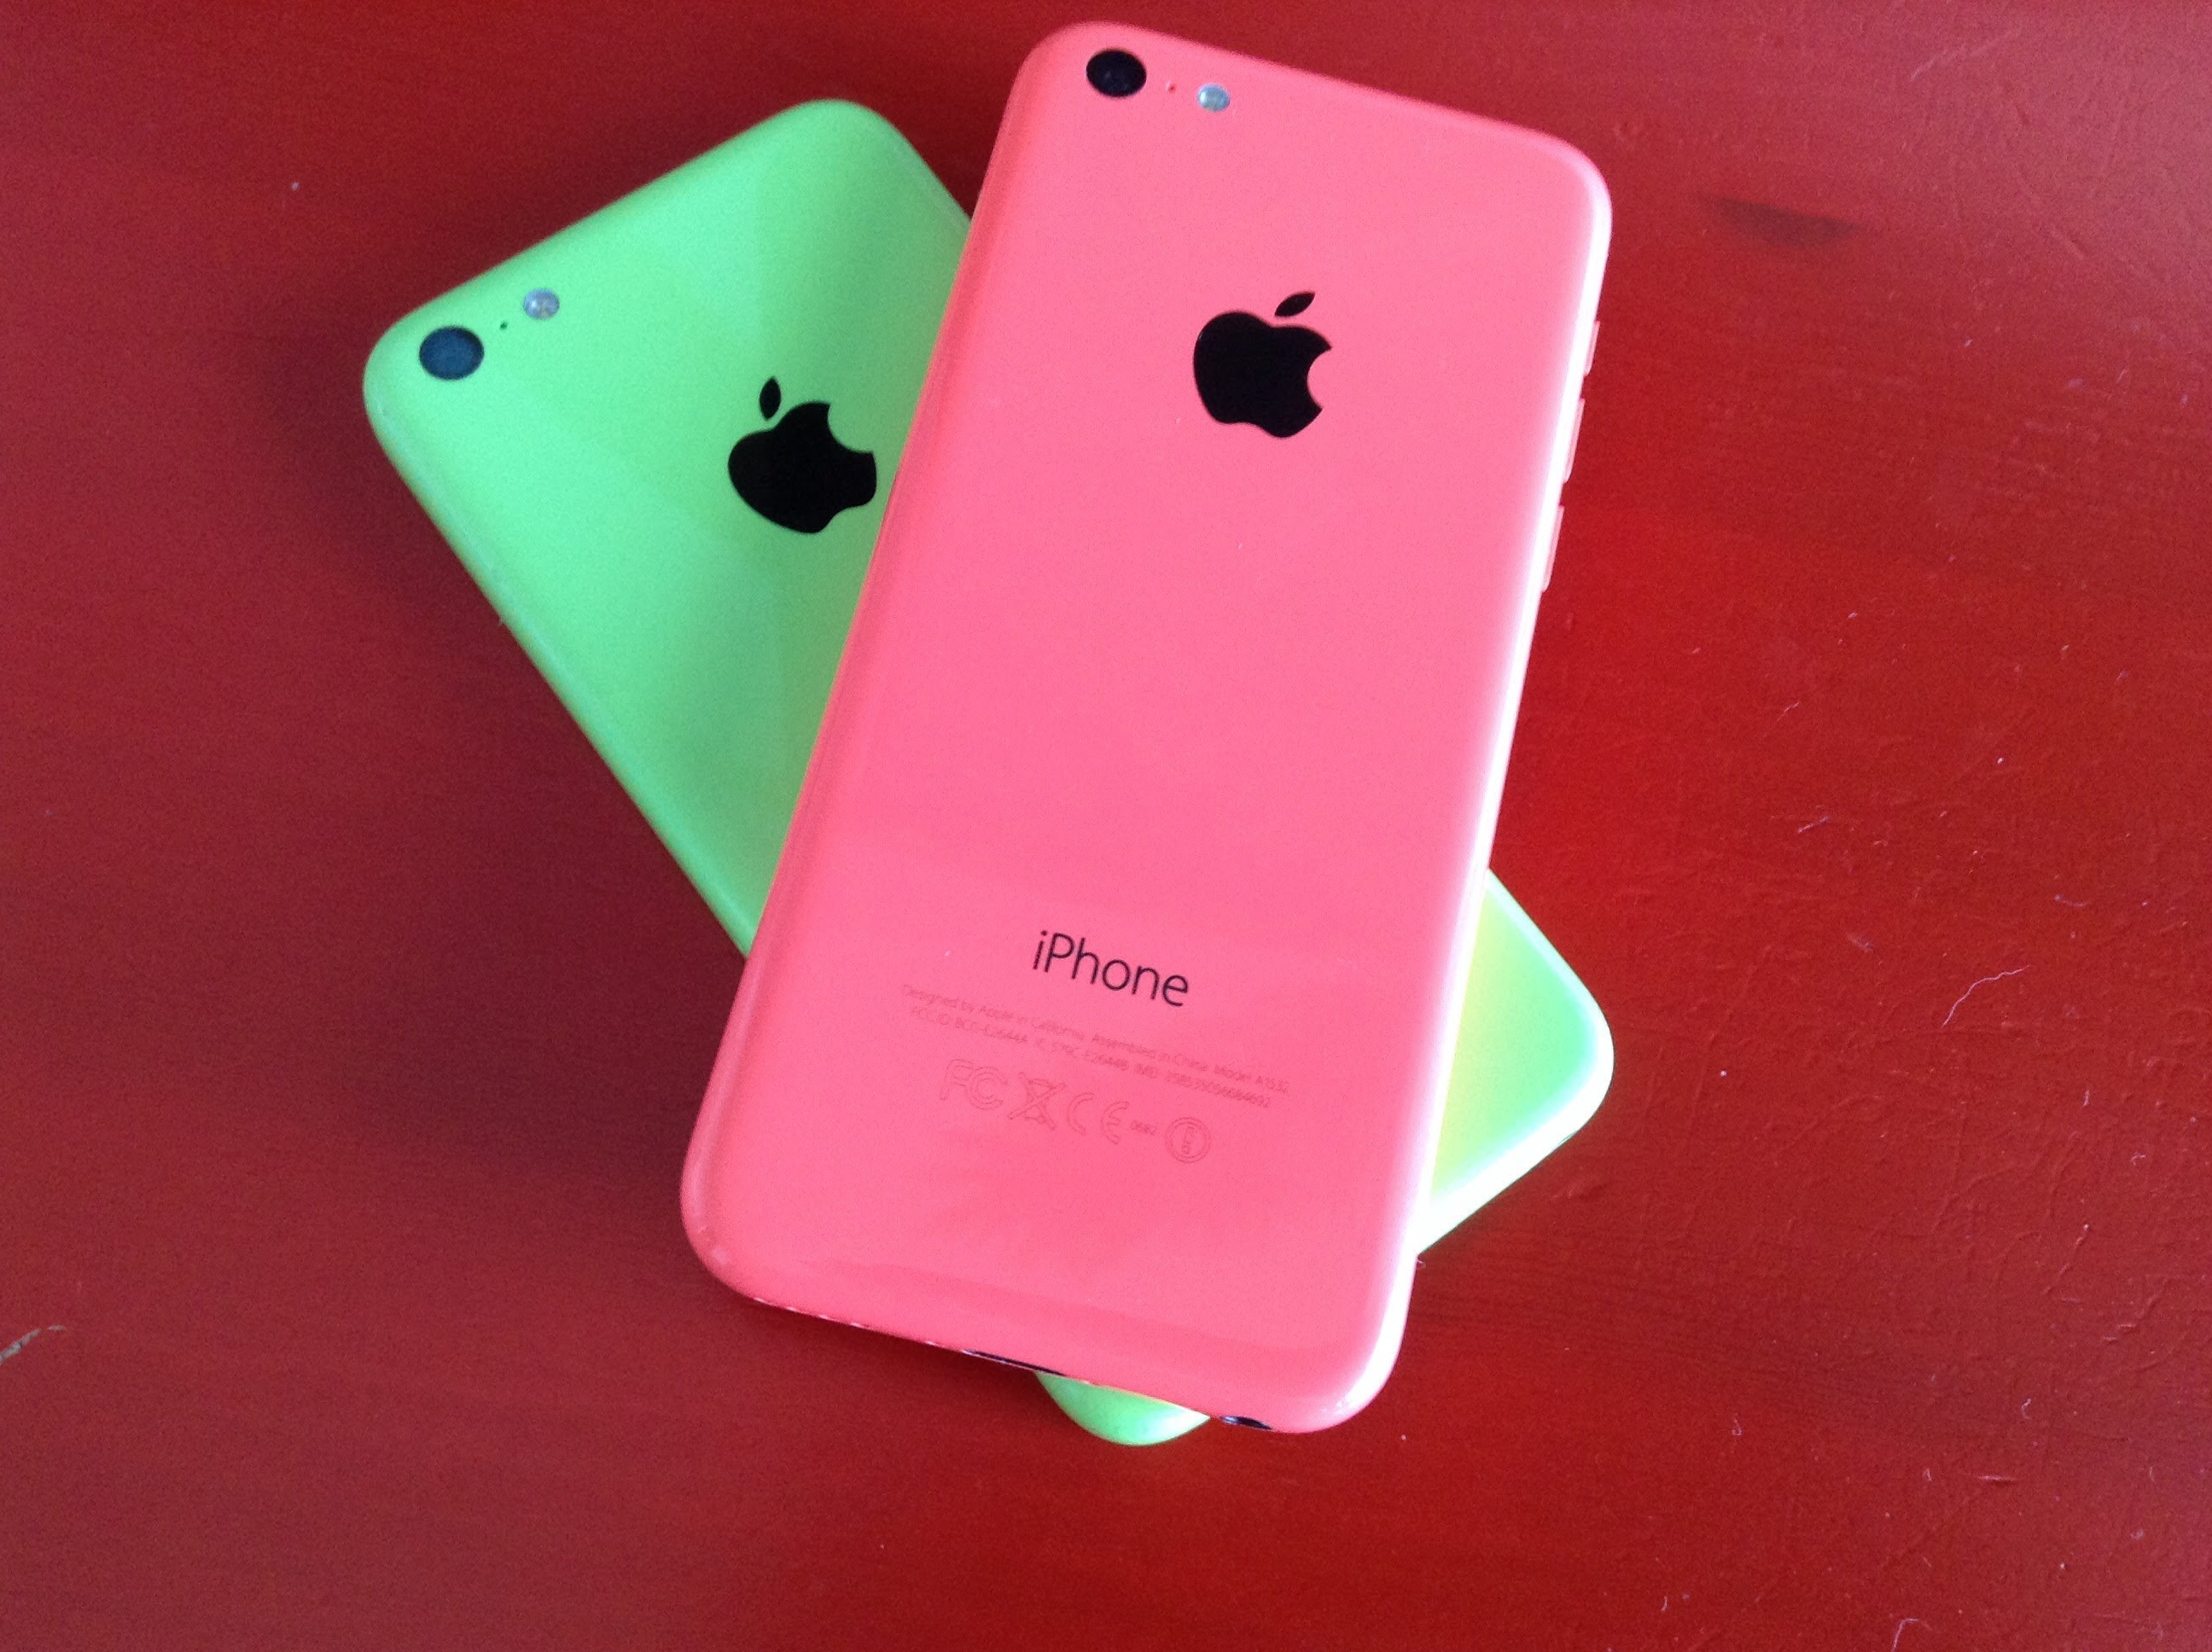 iPhone 5C: Pink or Green? - YouTube